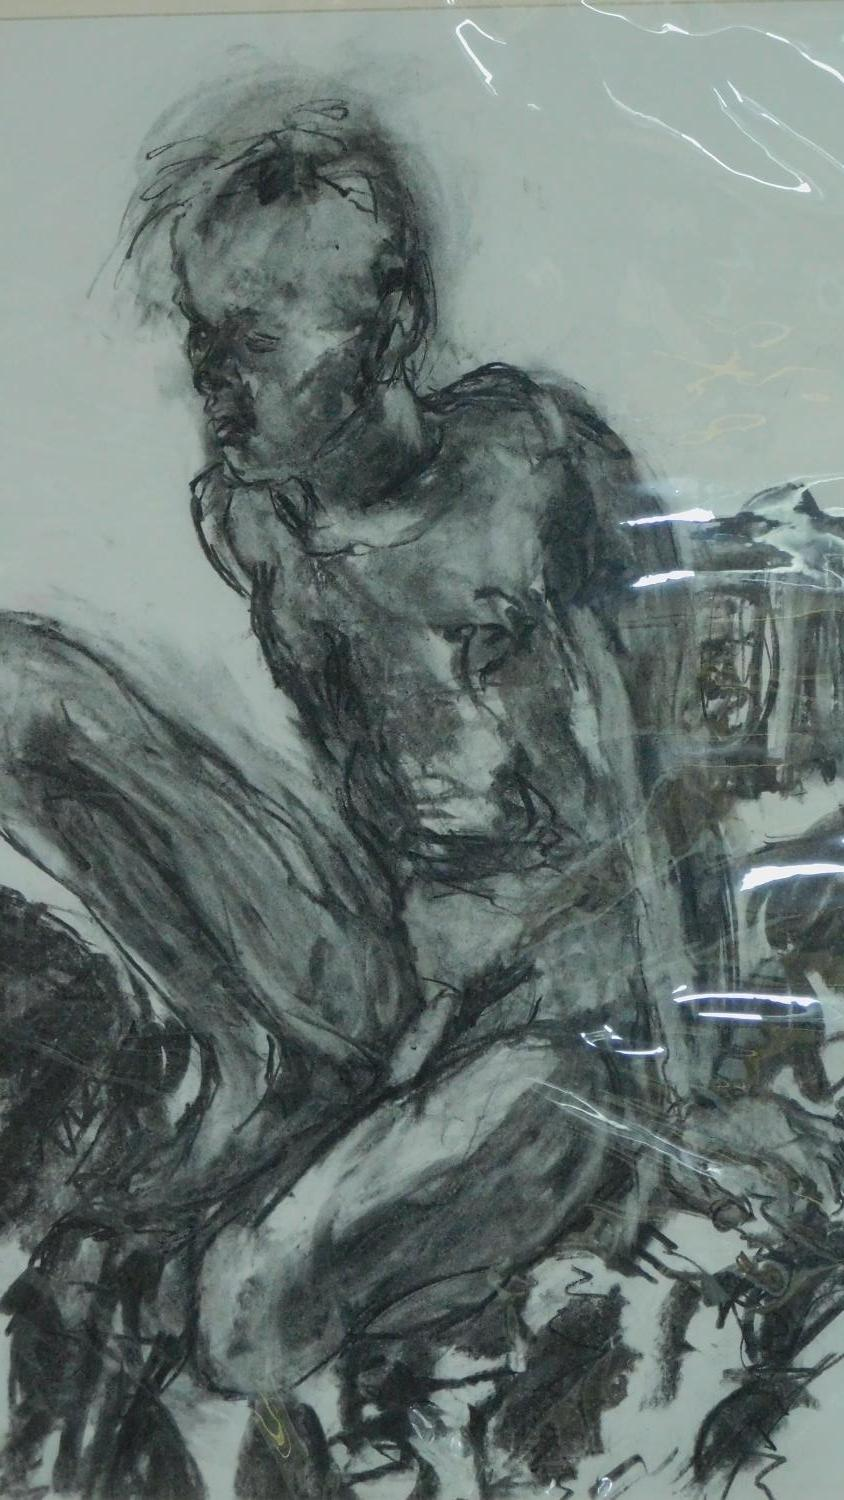 Two unframed mounted charcoal sketches, nude studies, monogrammed G H - 90x70 (largest) - Image 3 of 4